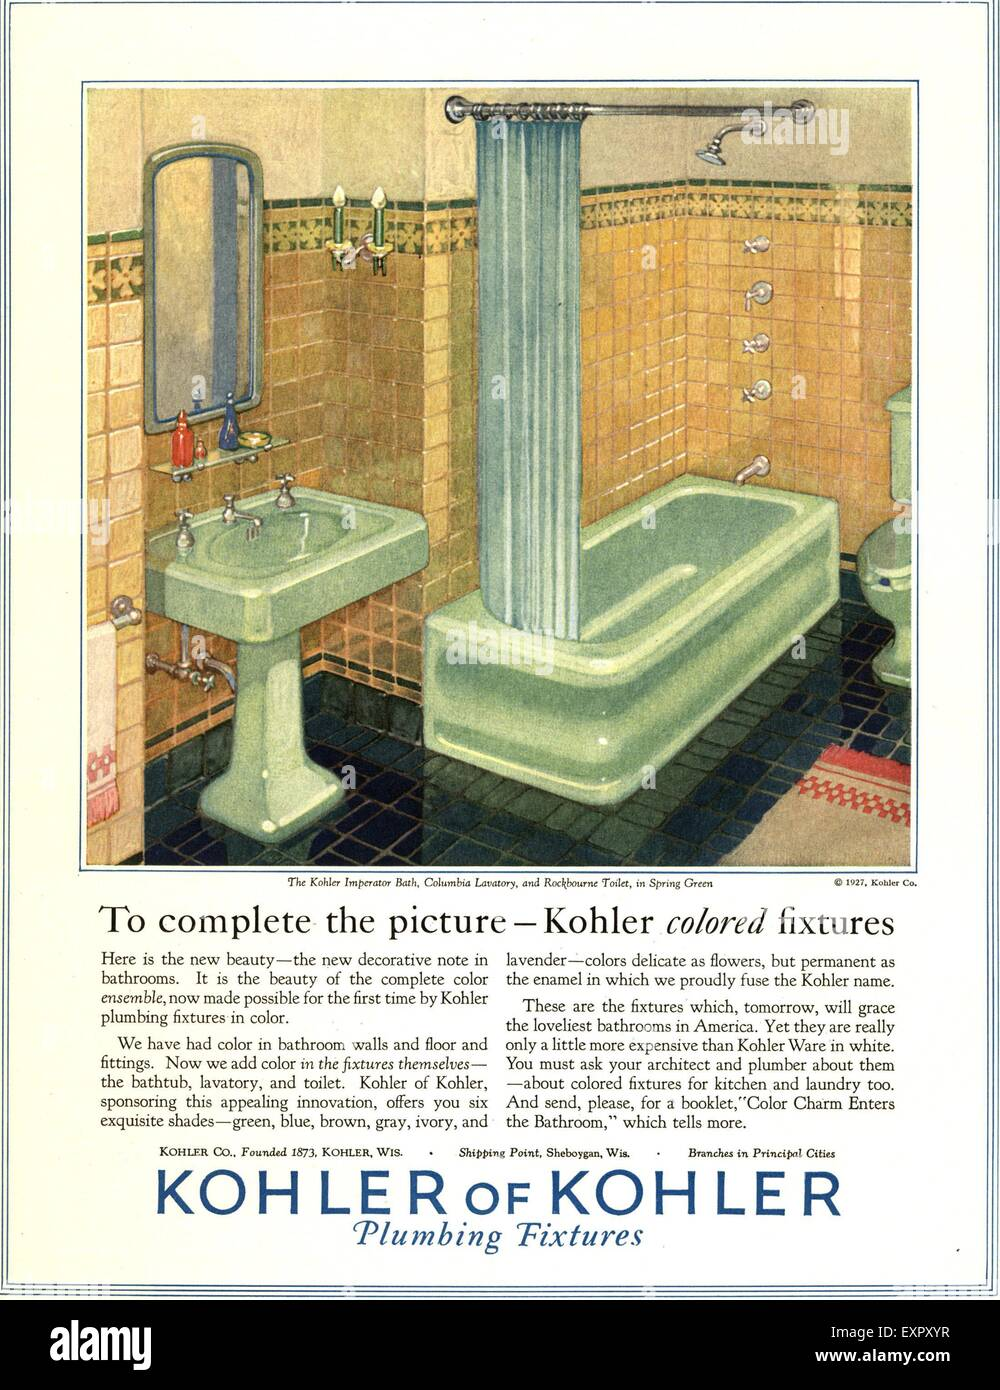 1920s Usa Kohler Bathrooms Magazine Stock Photos & 1920s Usa Kohler ...